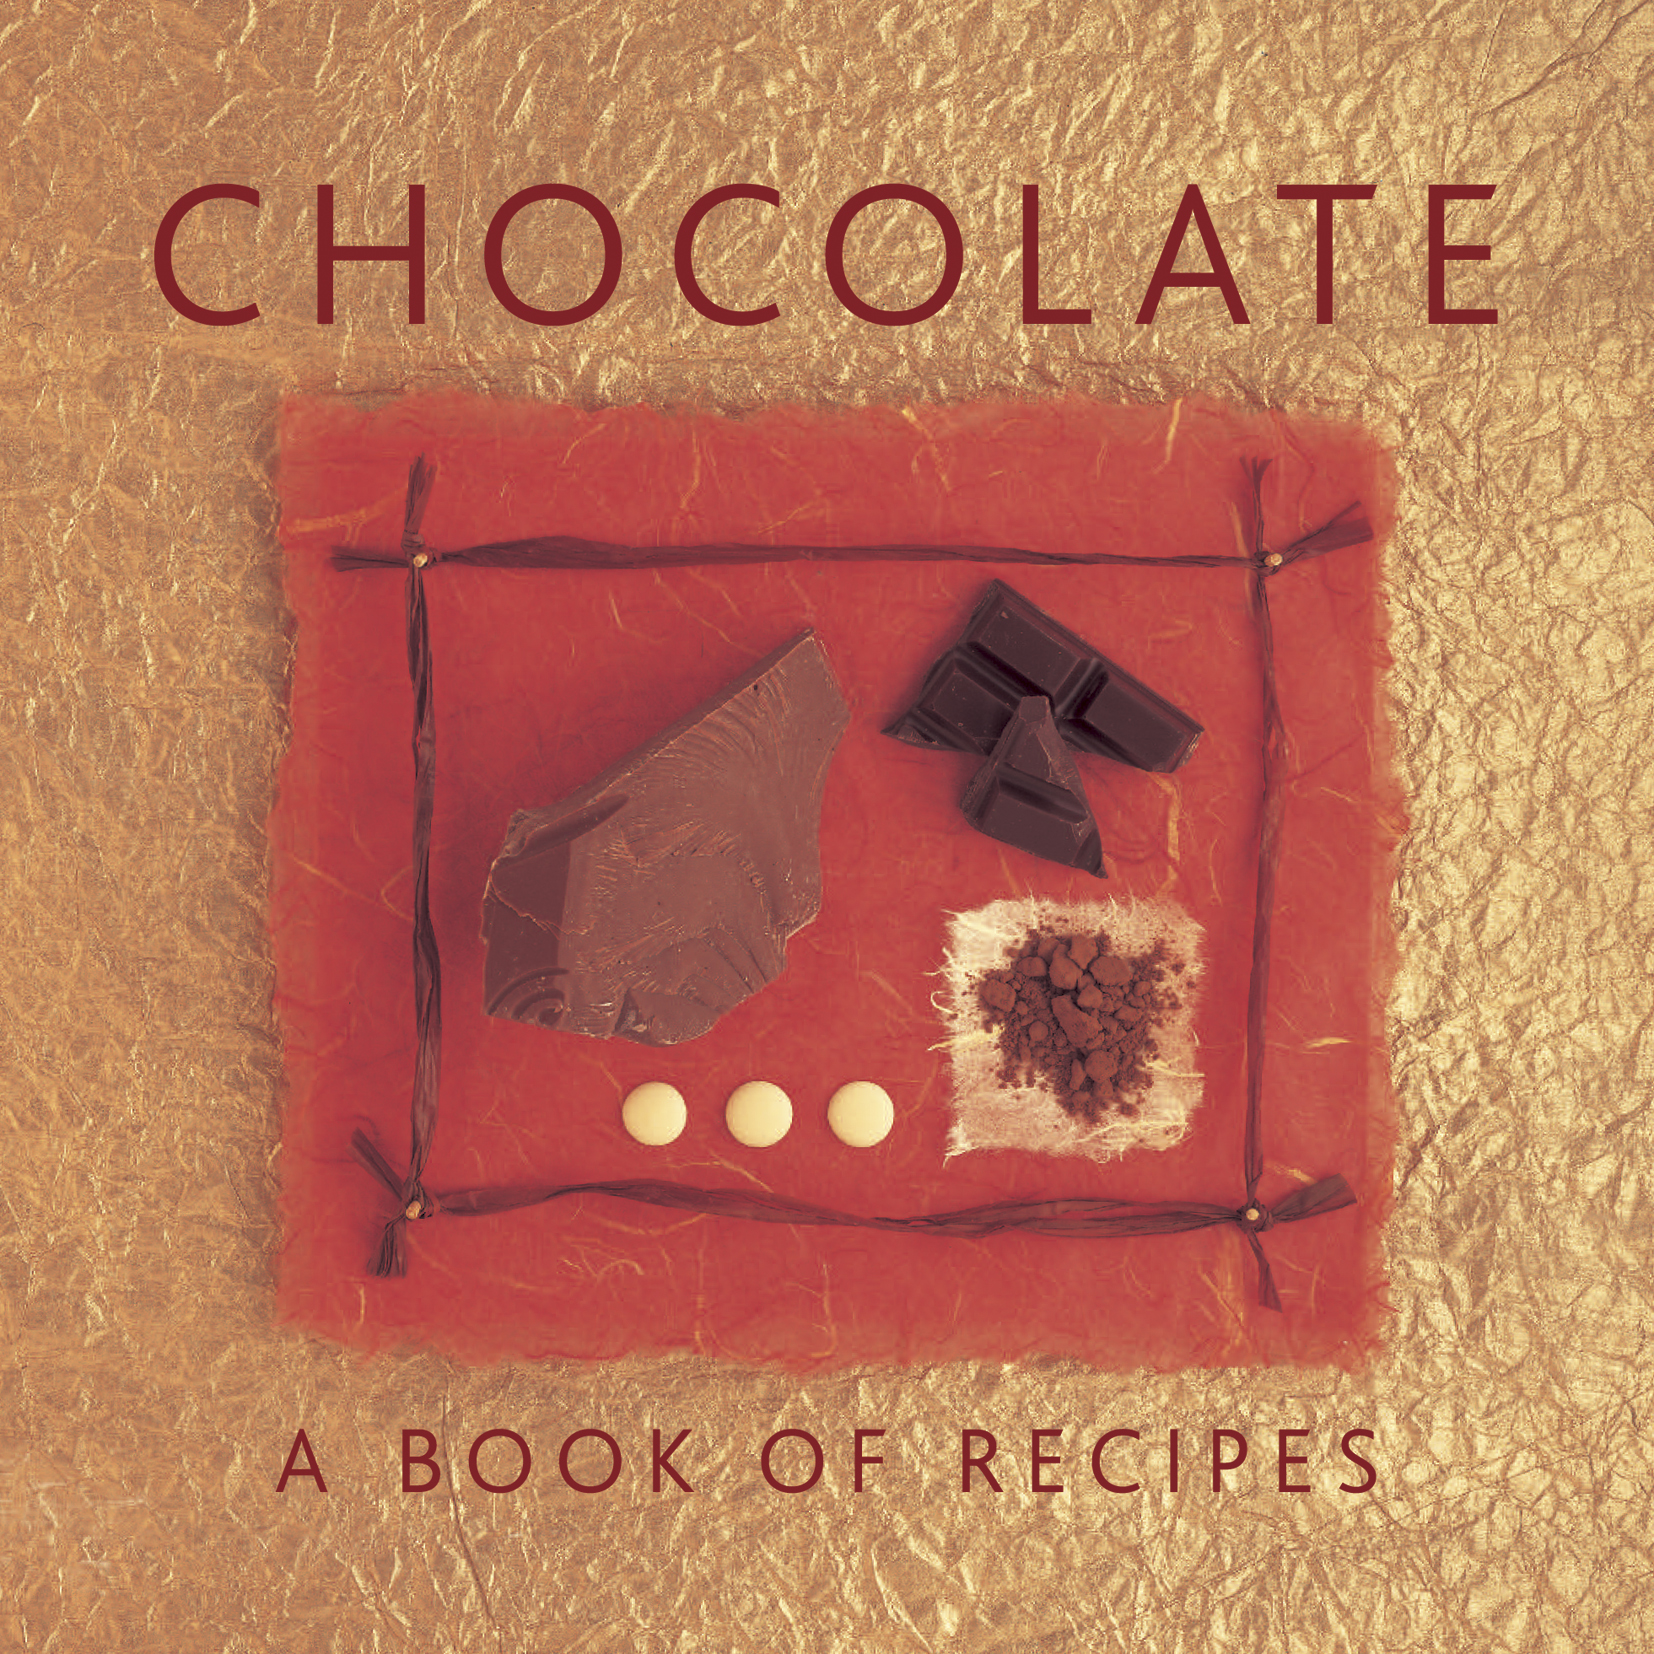 Chocolate A Book of Recipes